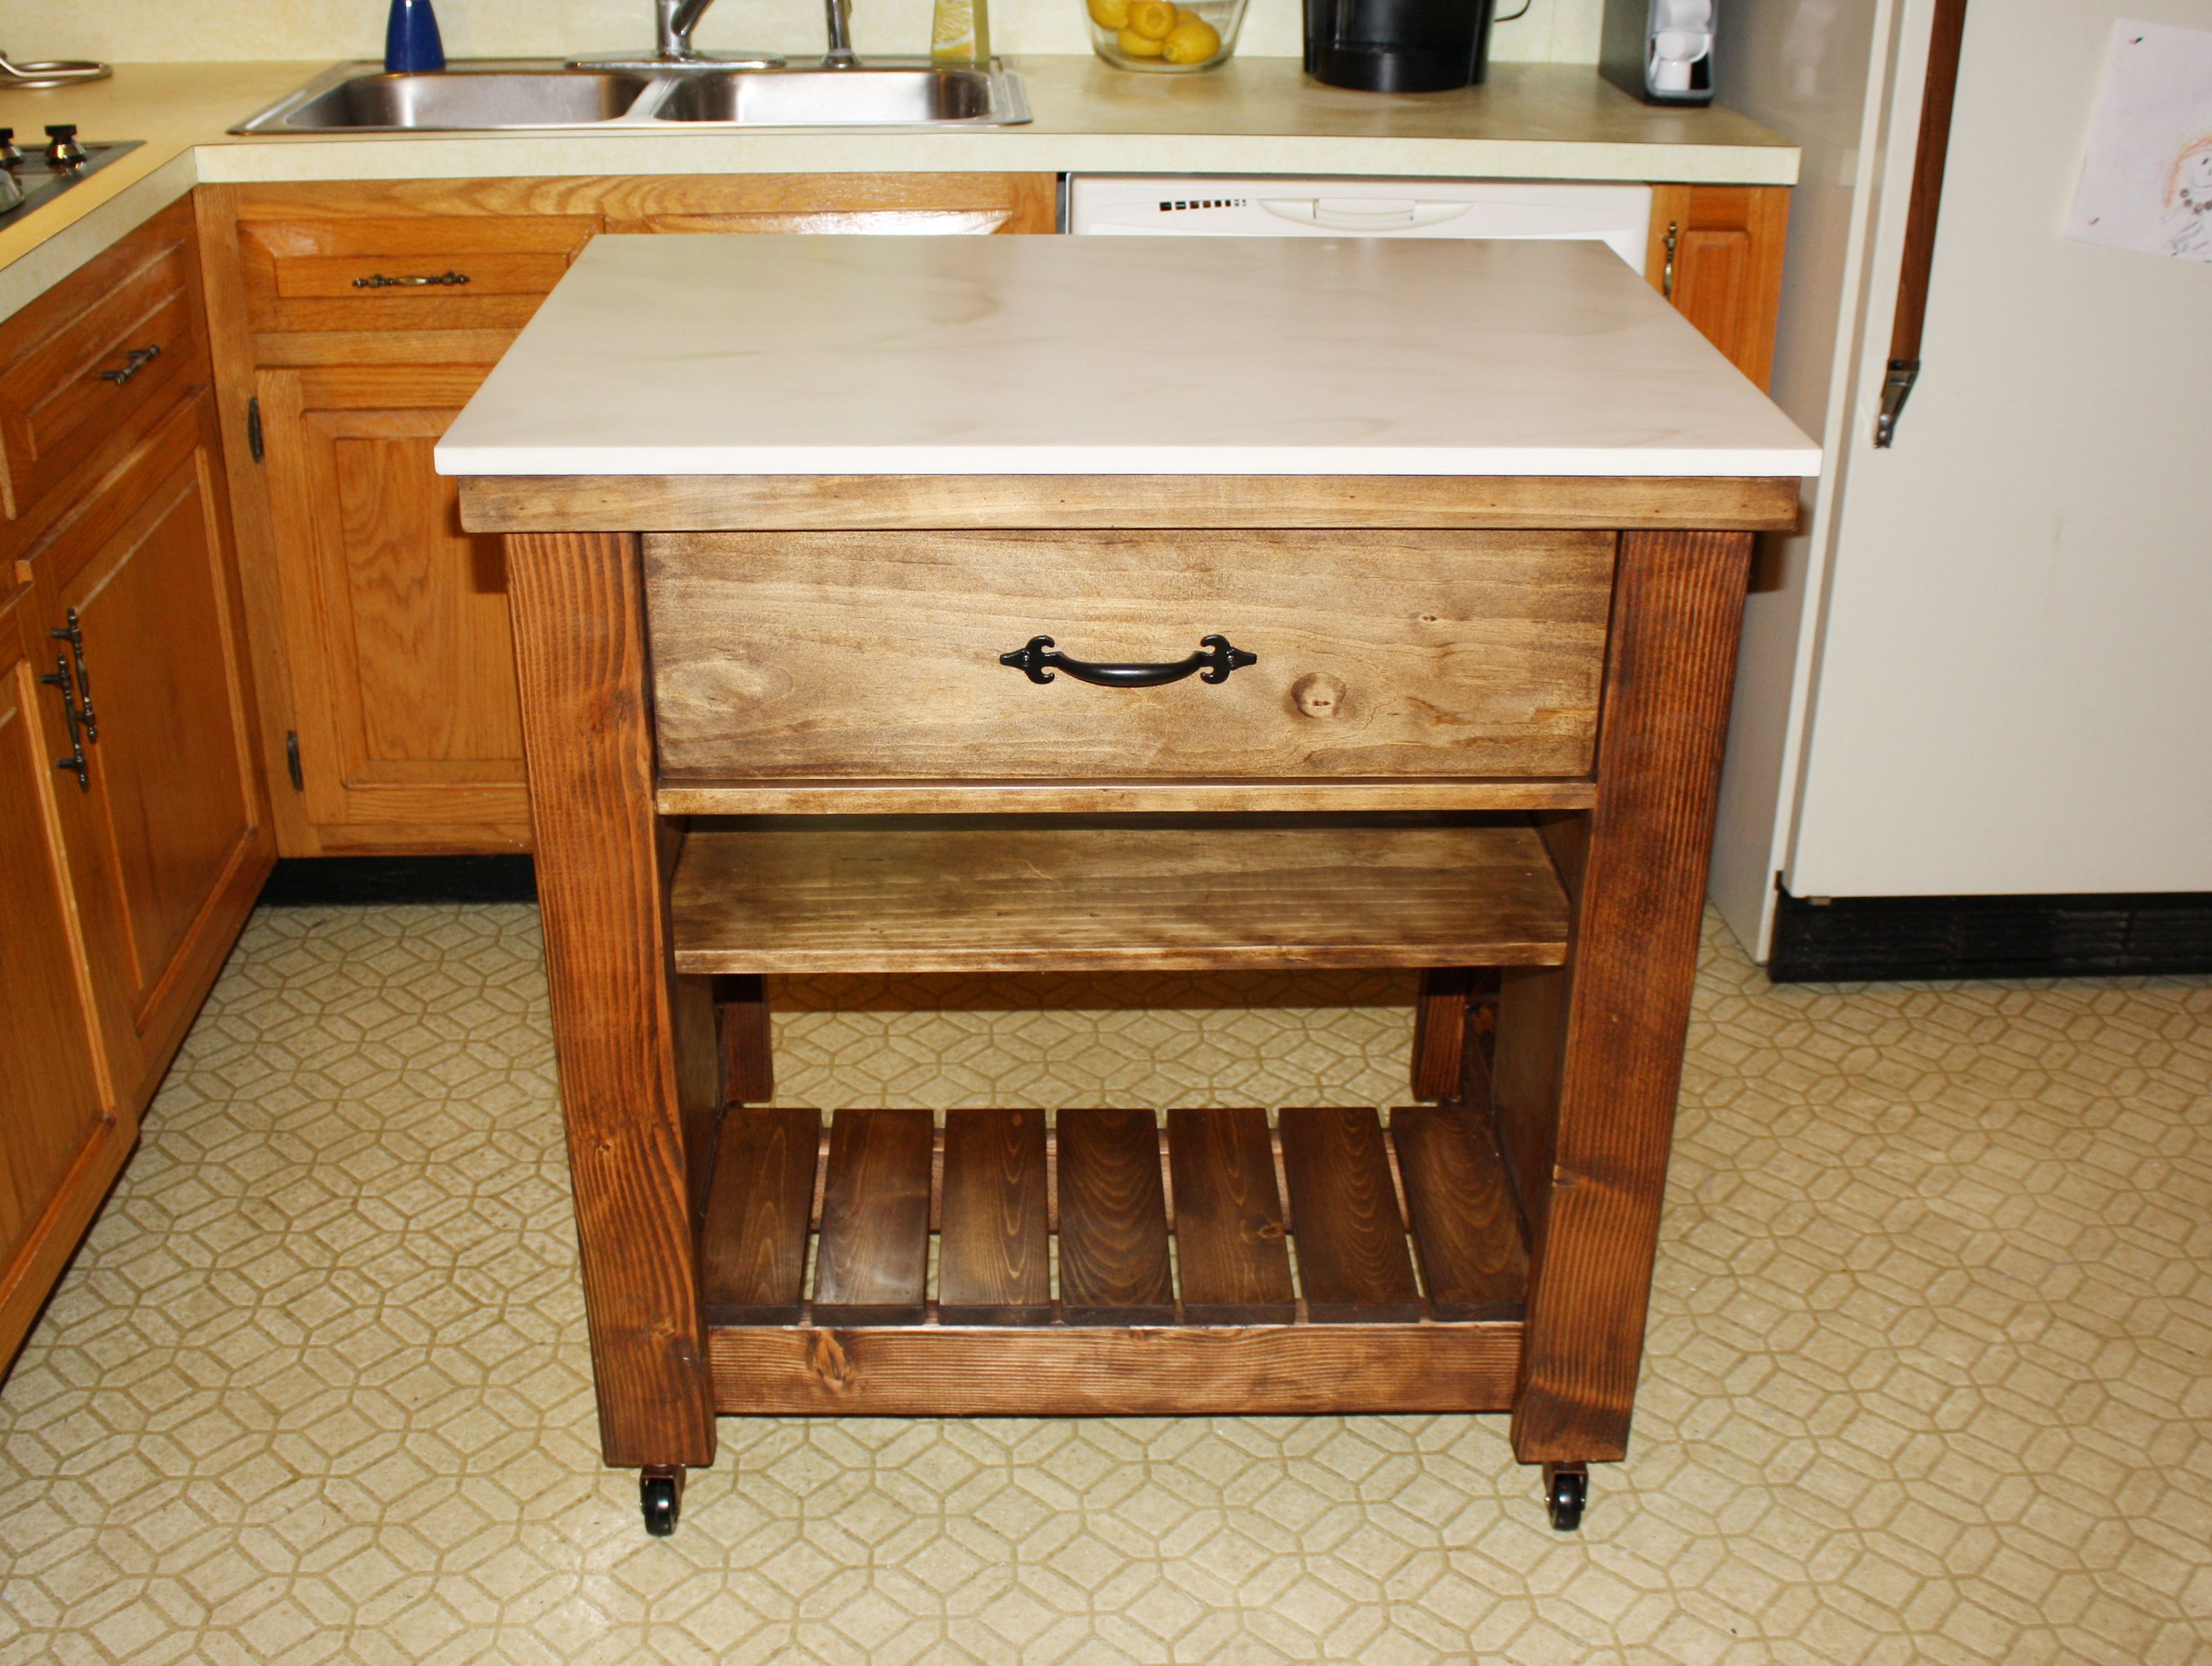 Ana White | The only glamorous thing in my kitchen... - DIY Projects ...